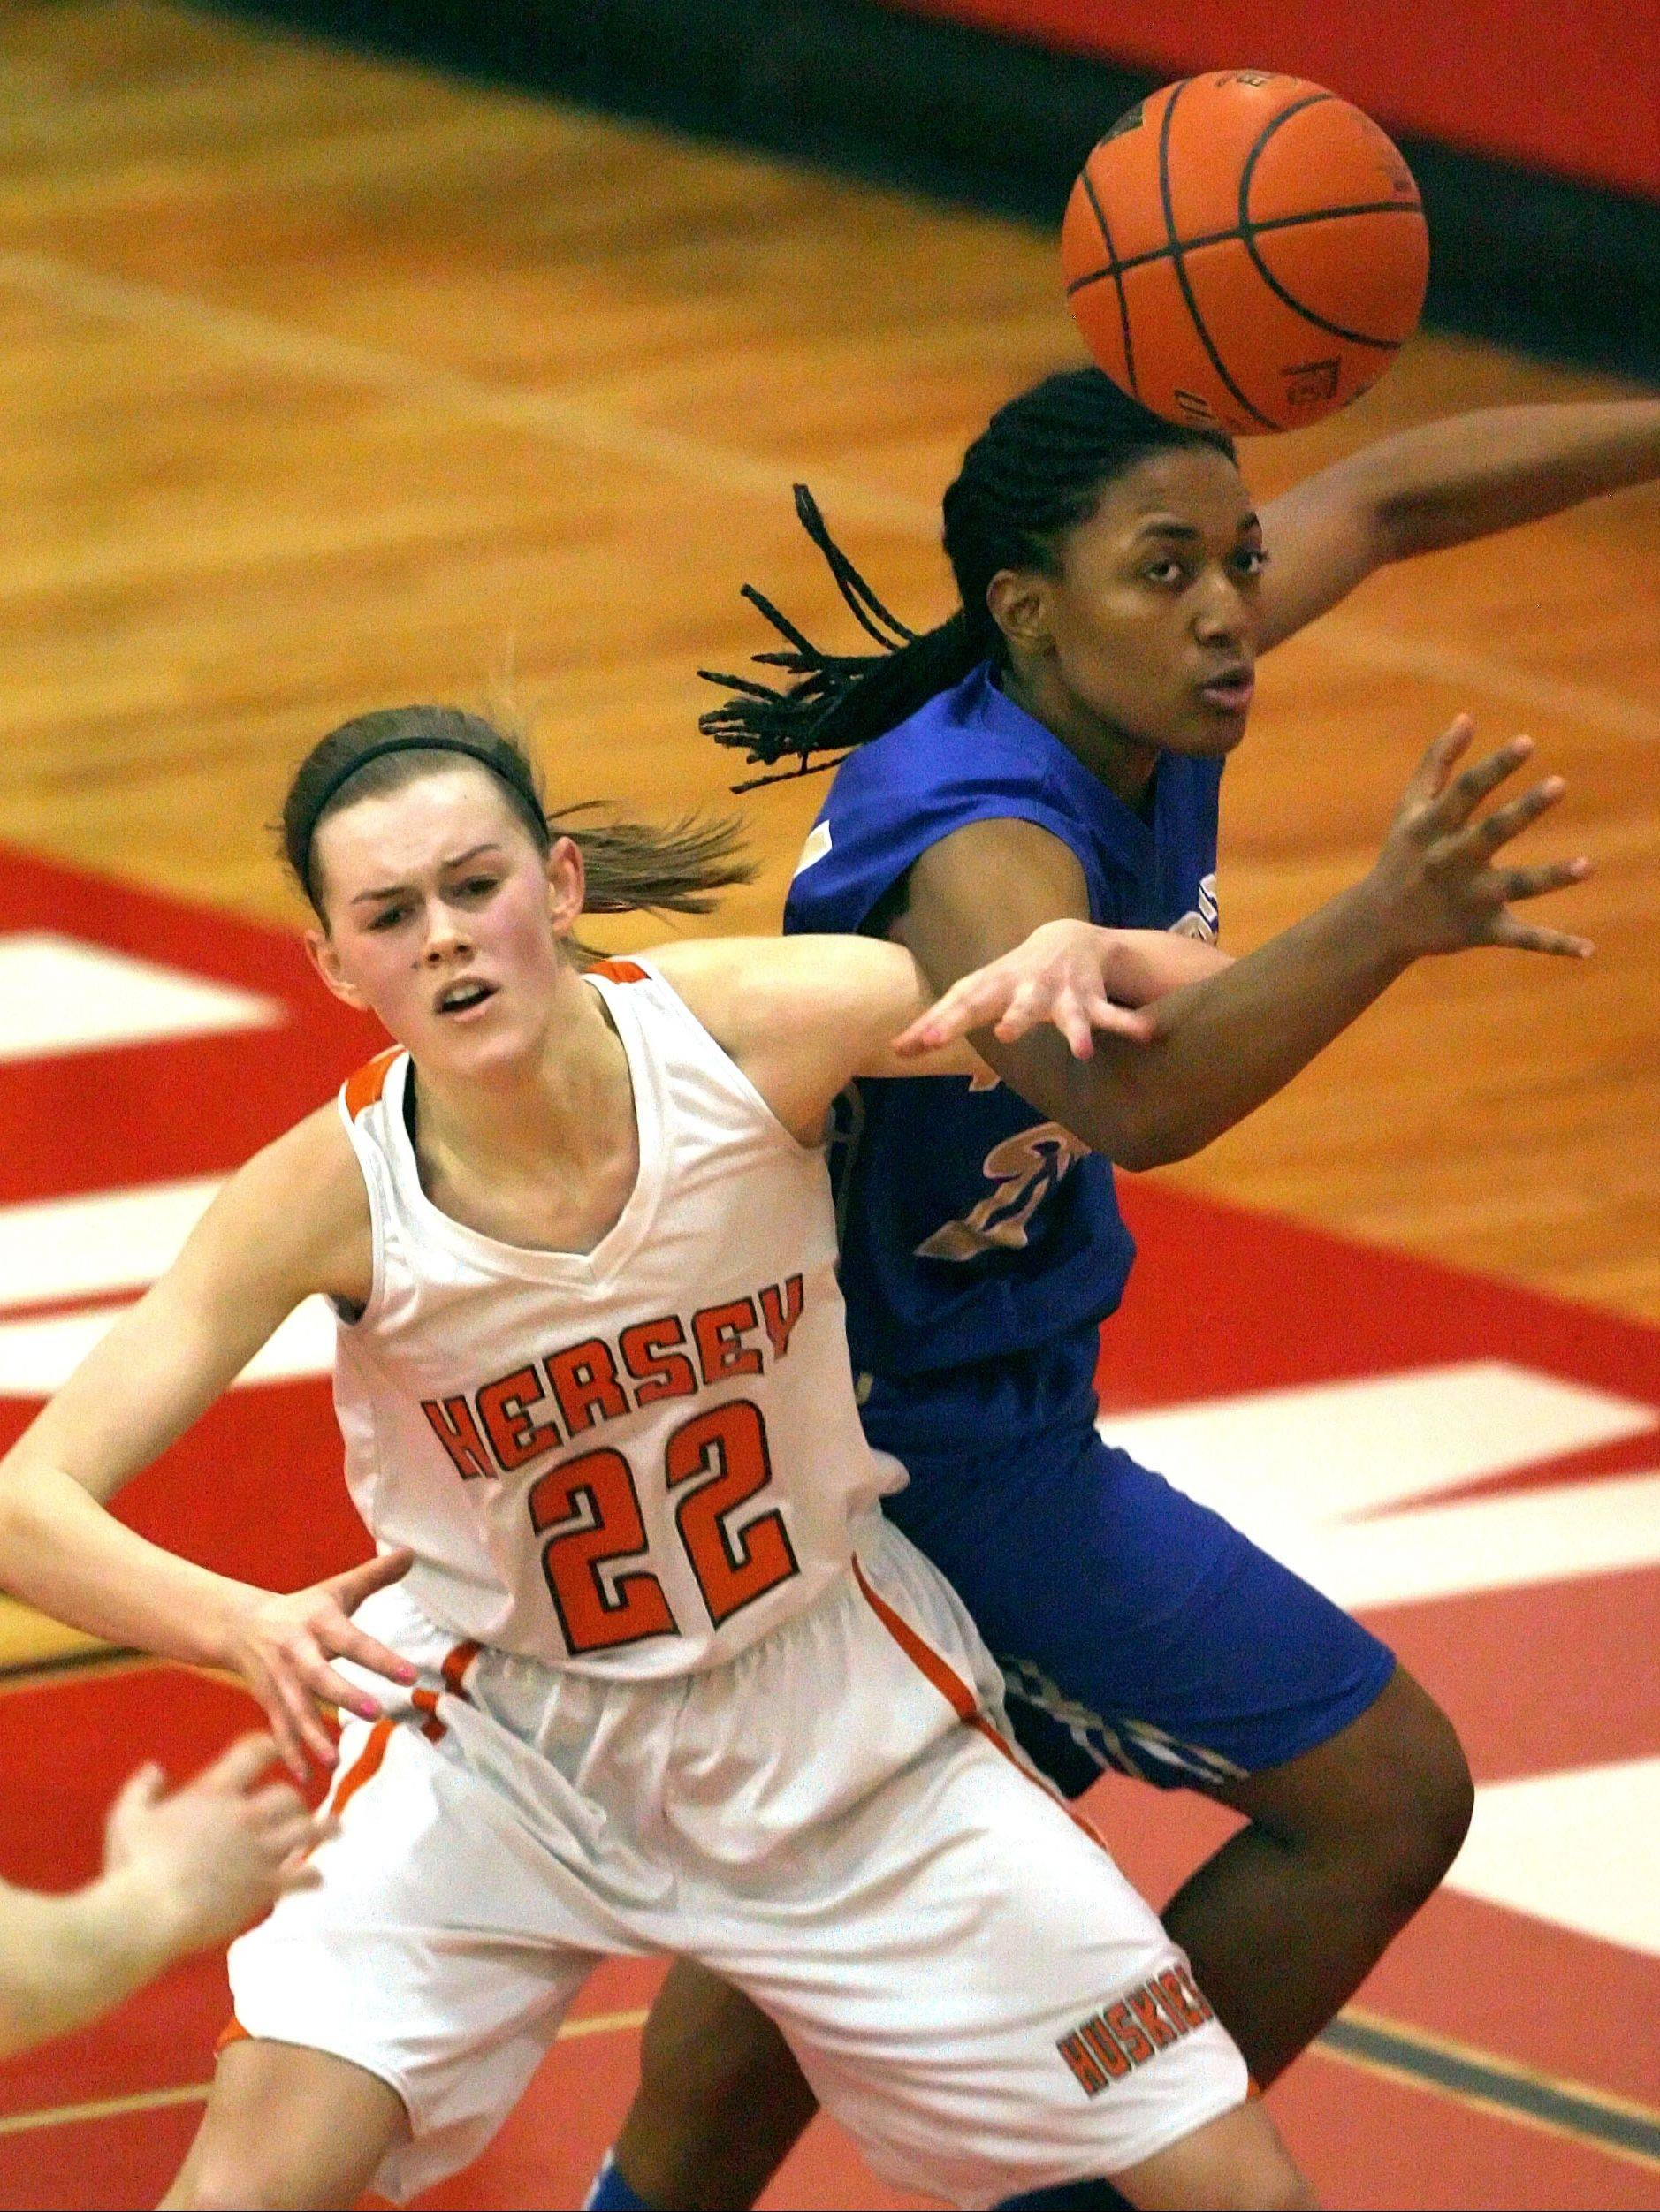 Hersey's Erica Hill, left, and Warren's Alyssa Phillips battle for a loose ball during Class 4A regional semifinal play Tuesday night at Mundelein.